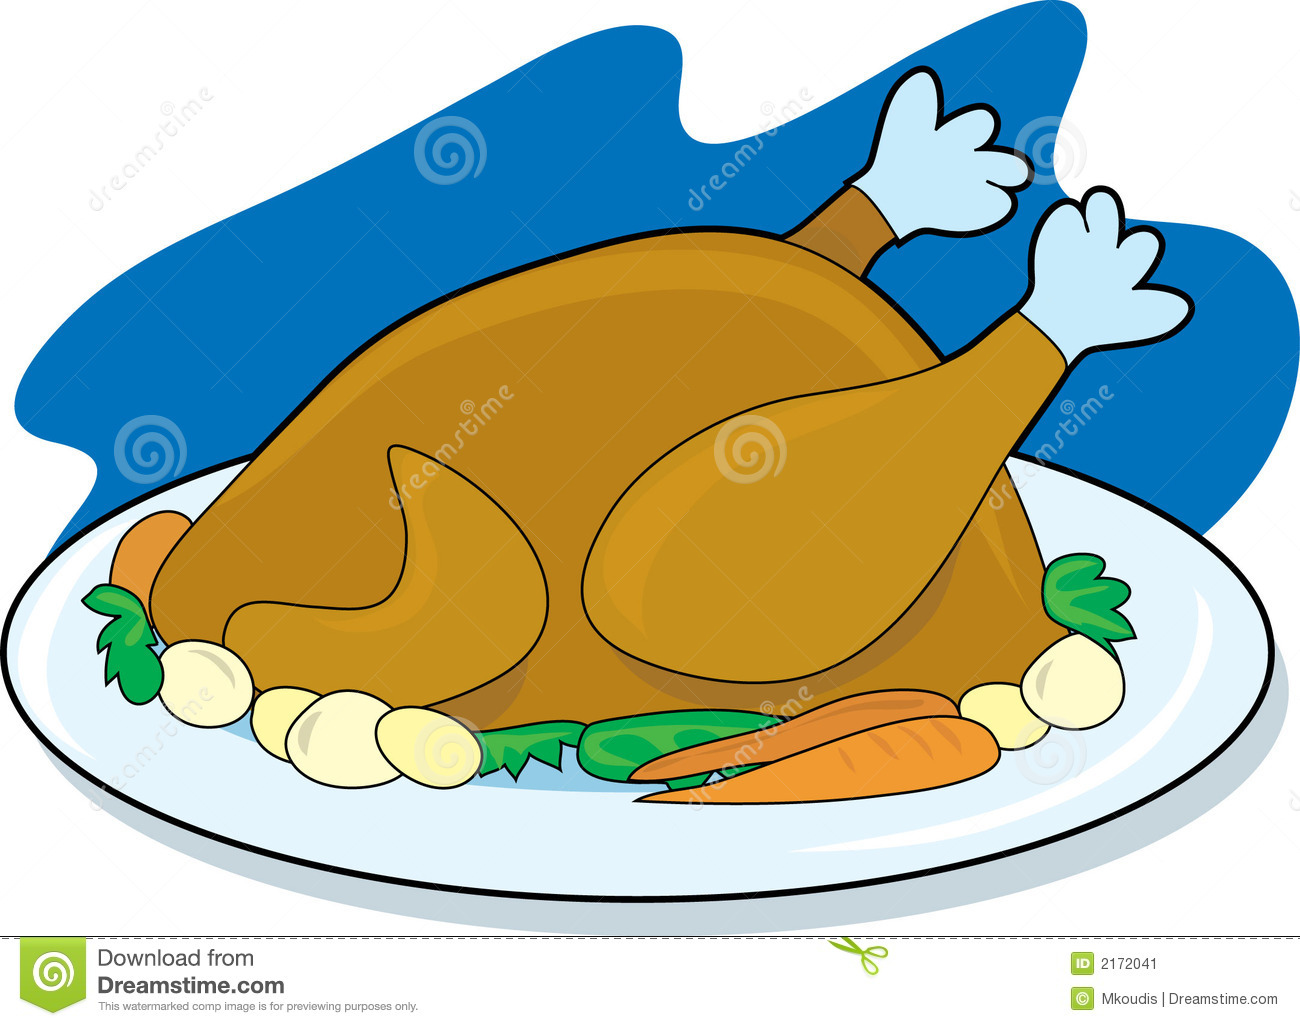 Platter of food clipart.